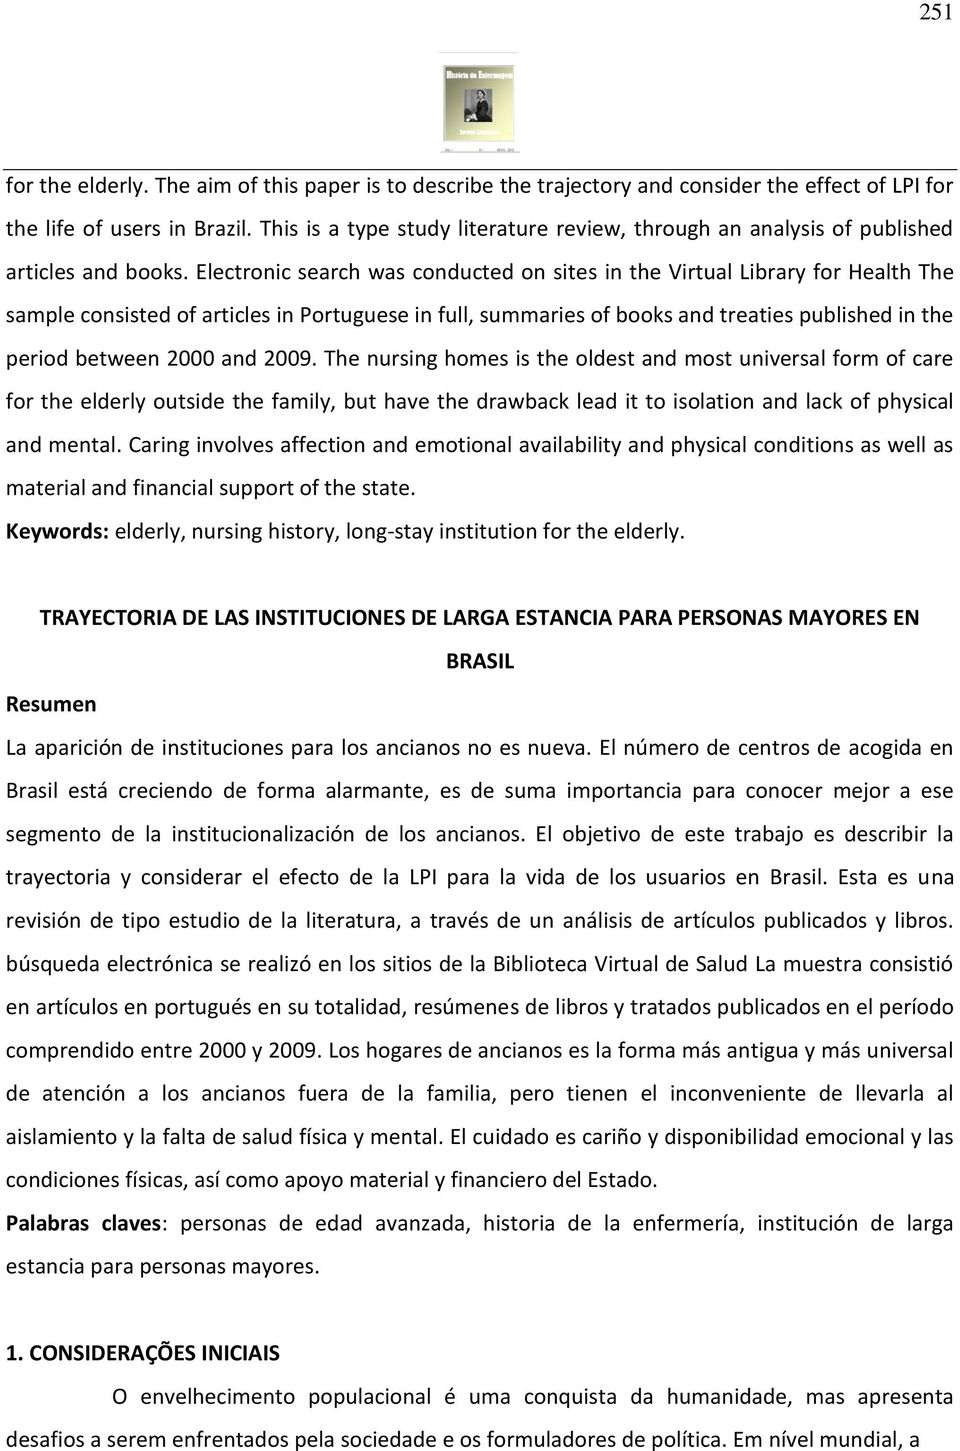 Electronic search was conducted on sites in the Virtual Library for Health The sample consisted of articles in Portuguese in full, summaries of books and treaties published in the period between 2000